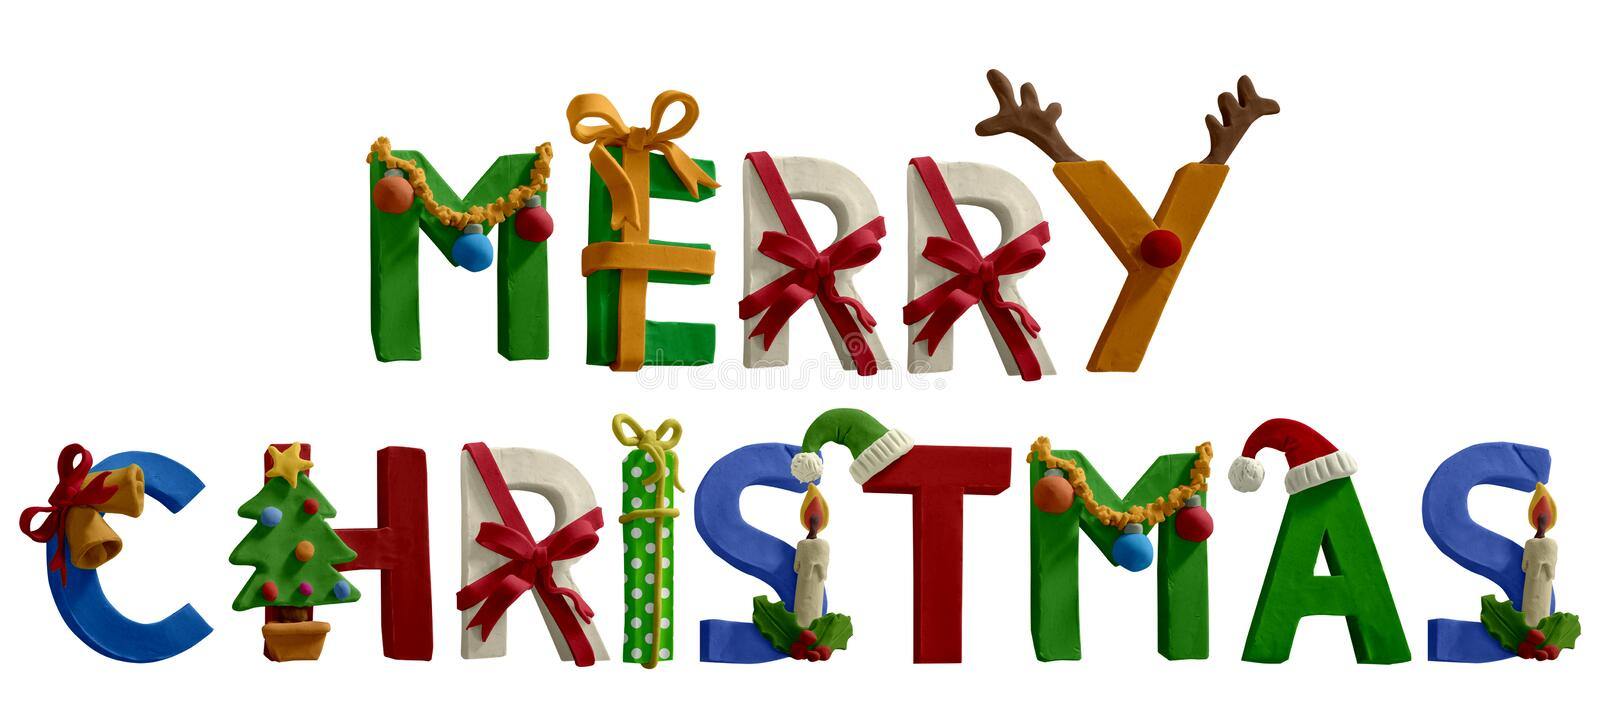 Merry Chritsmas text. Christmas Font. Handmade stock photos